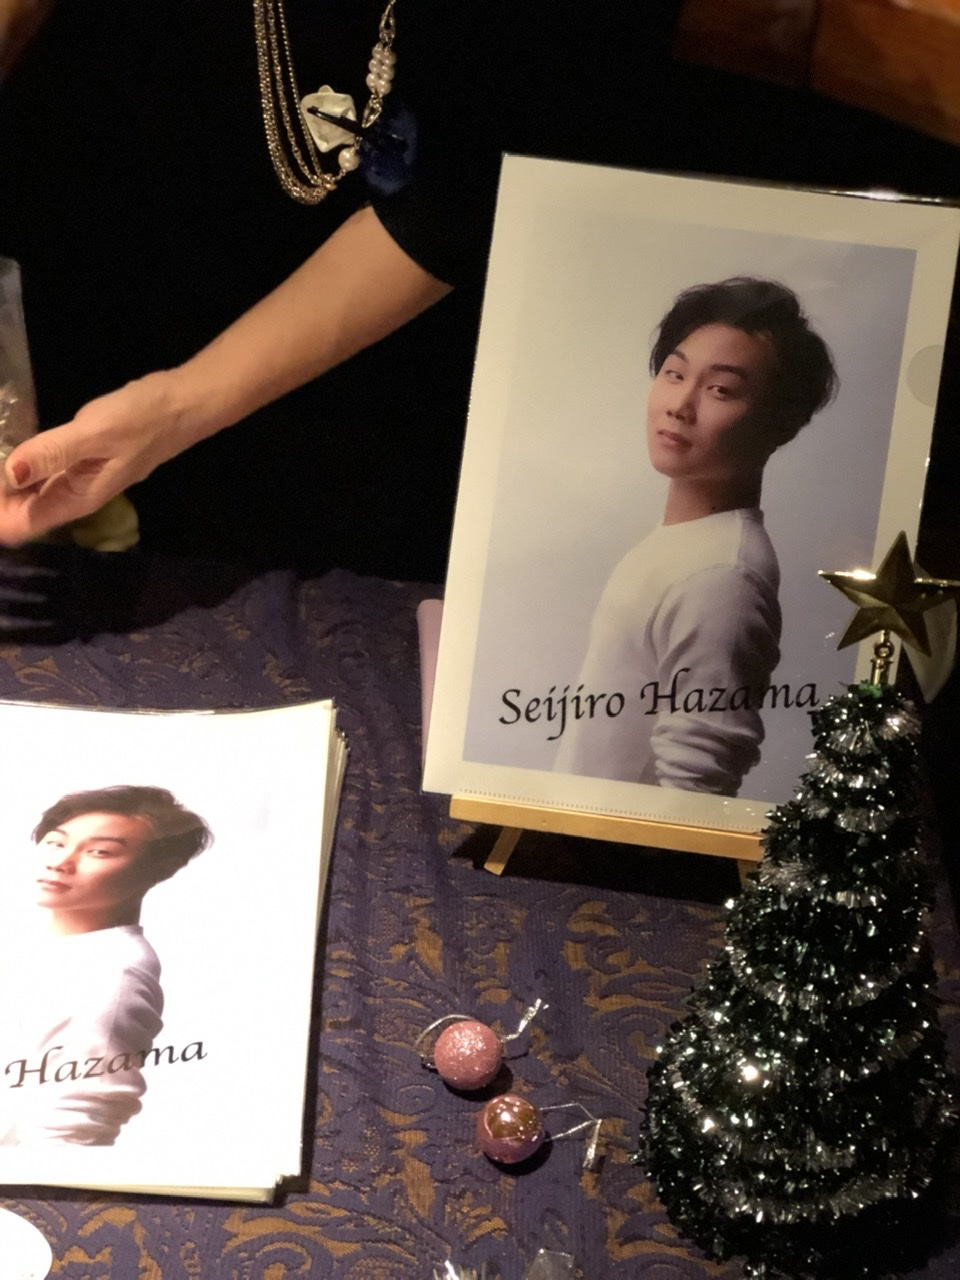 Seijiro Hazama Christmas & Birthdayソロライブ vol.4 @STAR PINES CAFE  12月21日(土)_a0157409_13240458.jpeg